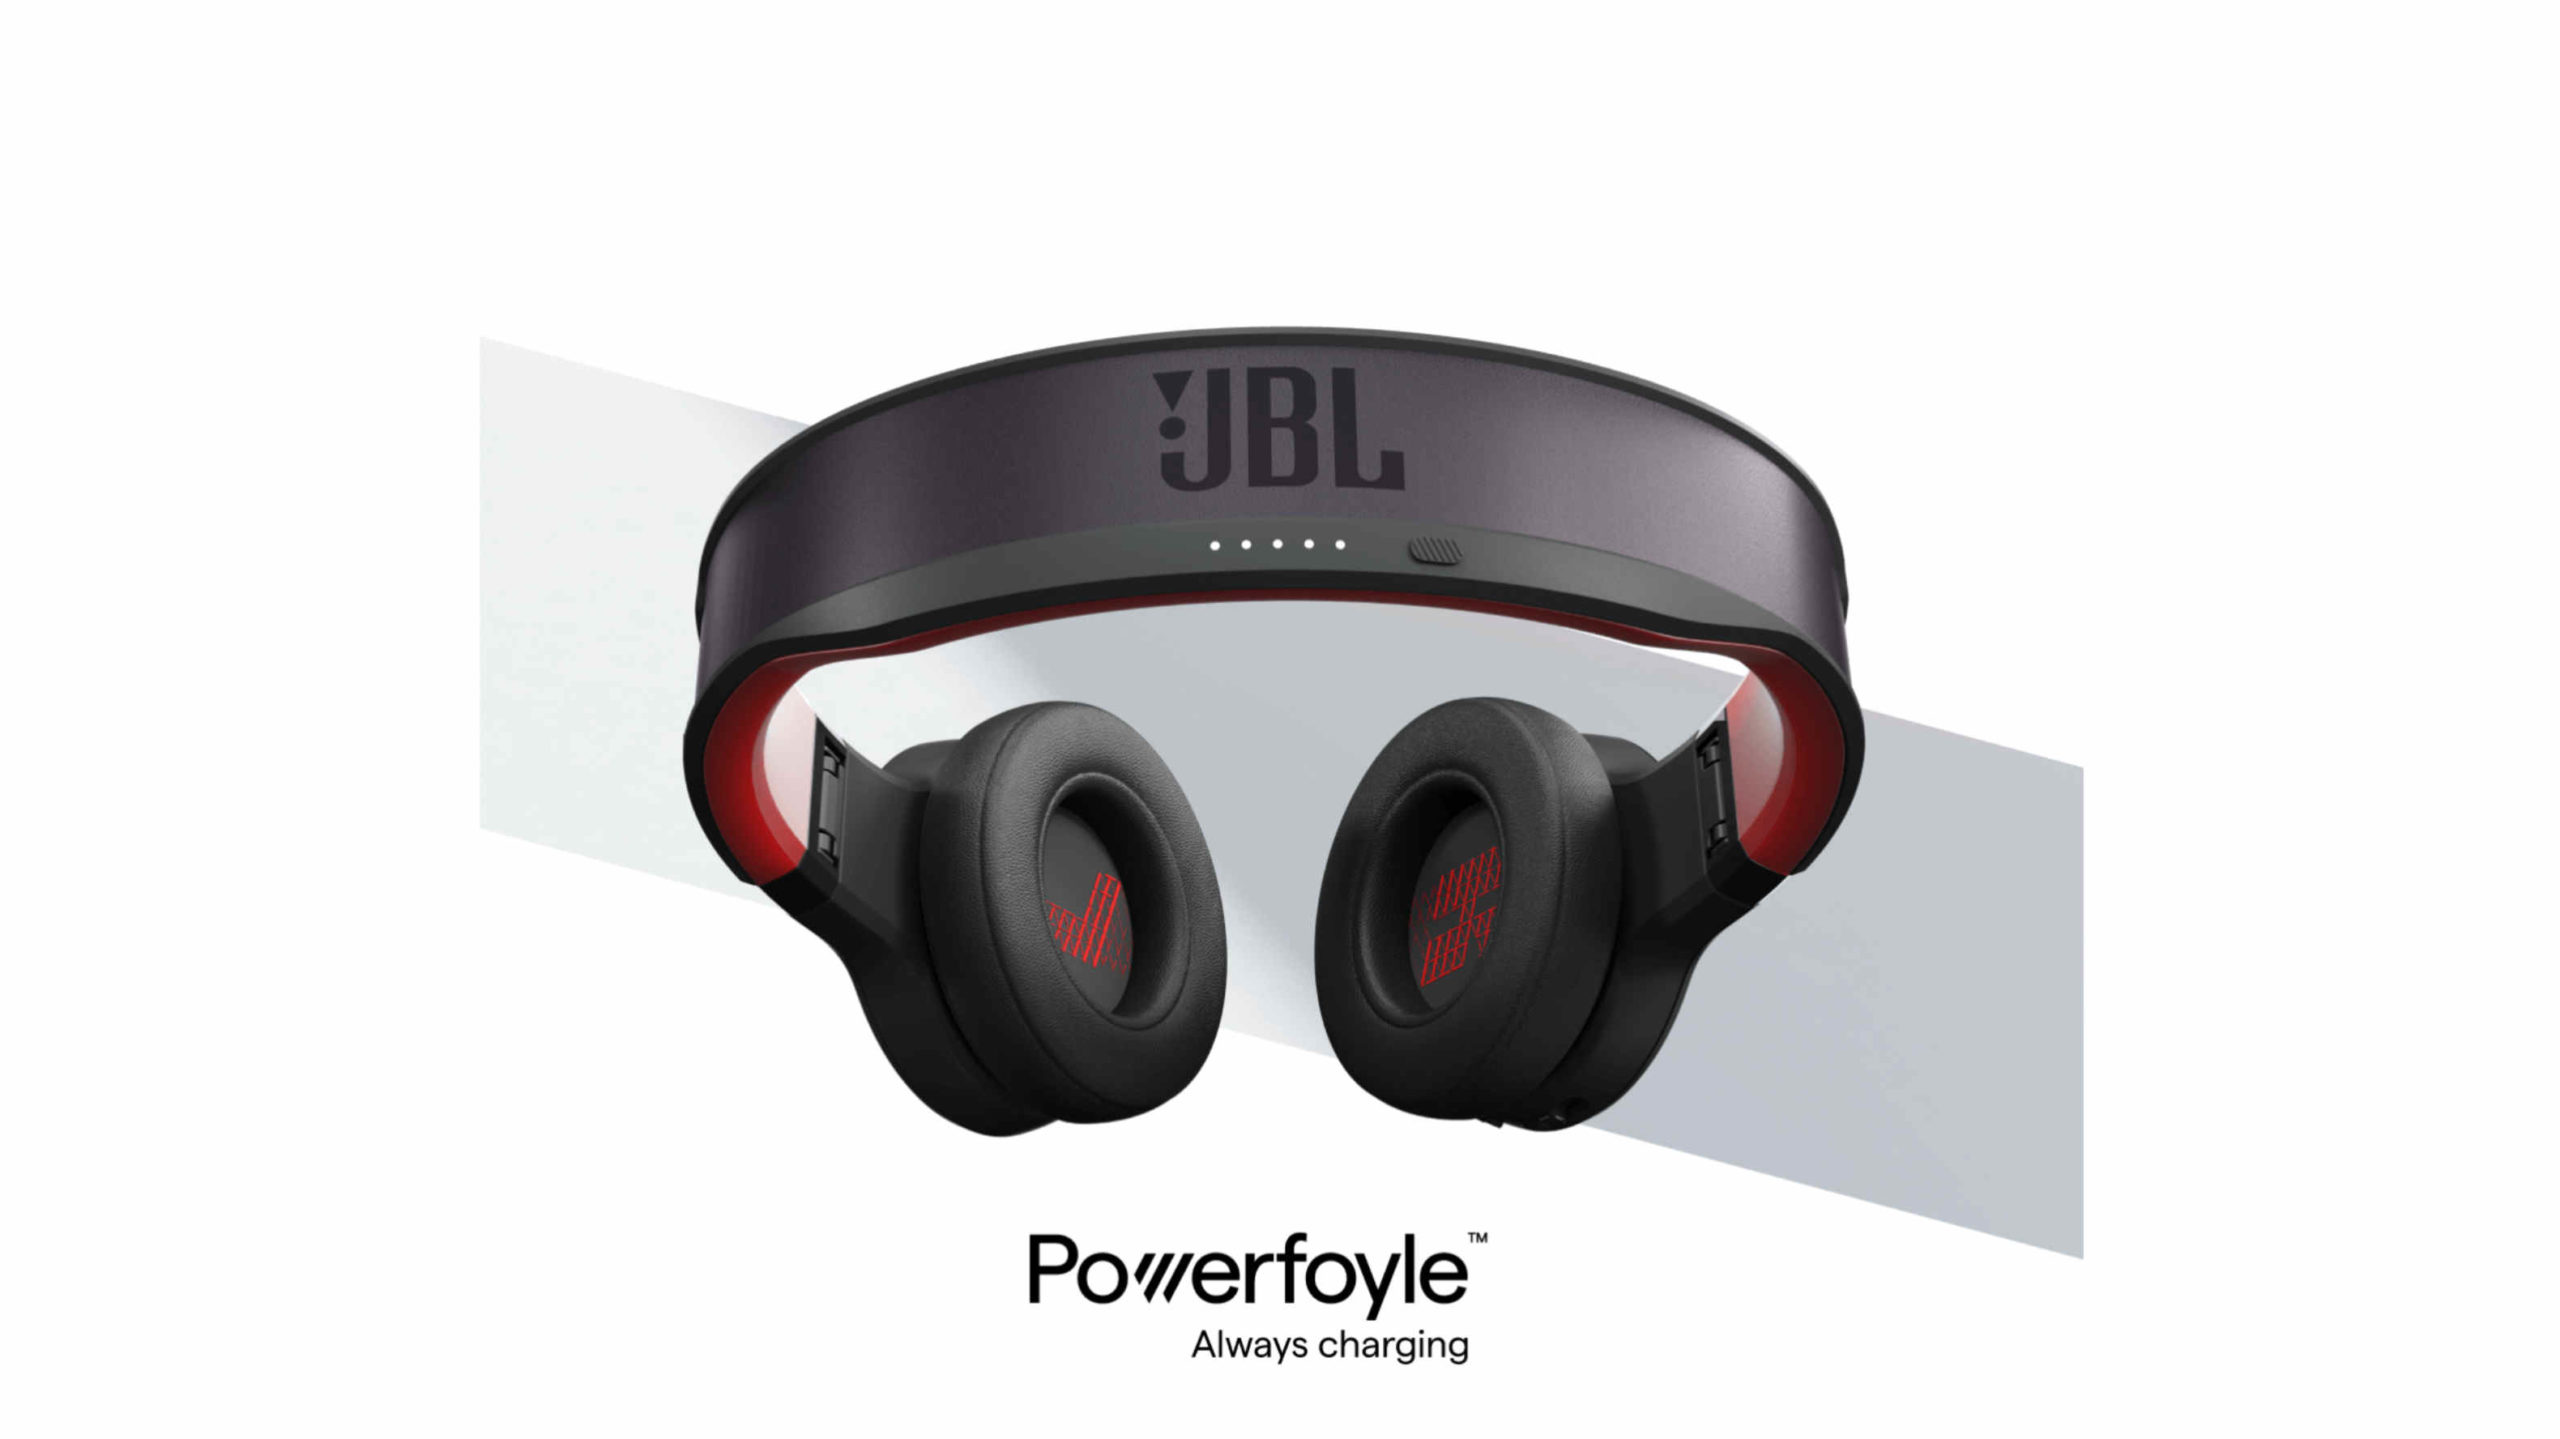 JBL working on headphones that charge with solar power